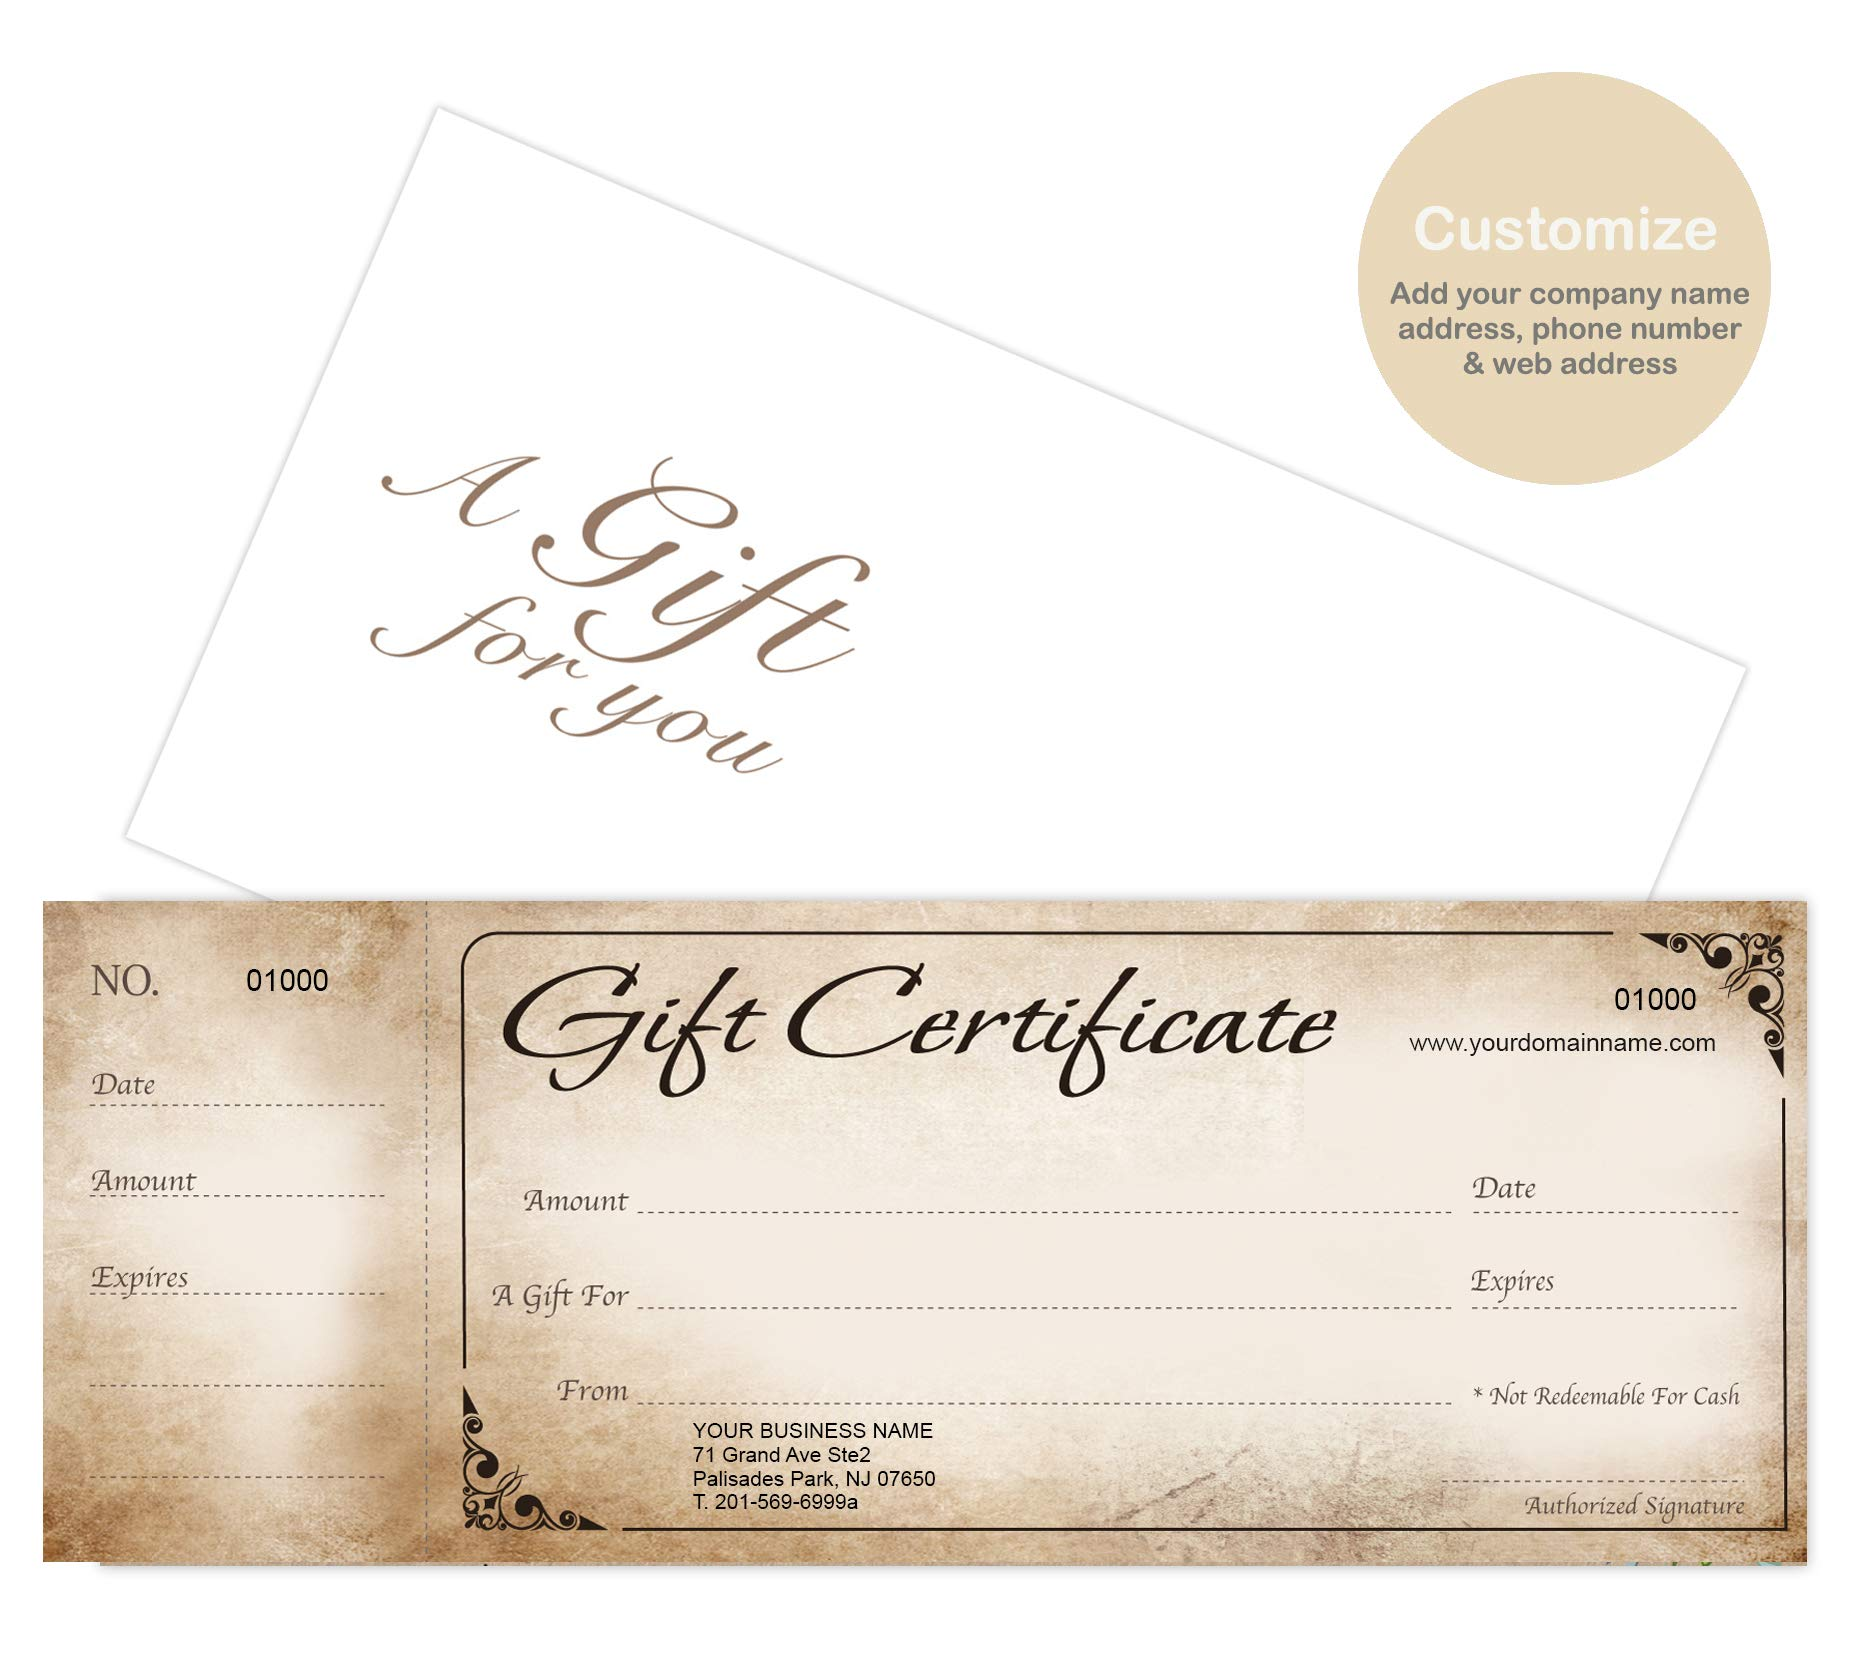 Custom Gift Certificates Cards with Envelopes 100 set - Rustic Image - Gift Coupons,Vouchers for Holiday, Christmas,Spa,Makeup,Hair Beauty Salon,Restaurant,Small Business by IMPACTONLINEPRINTING